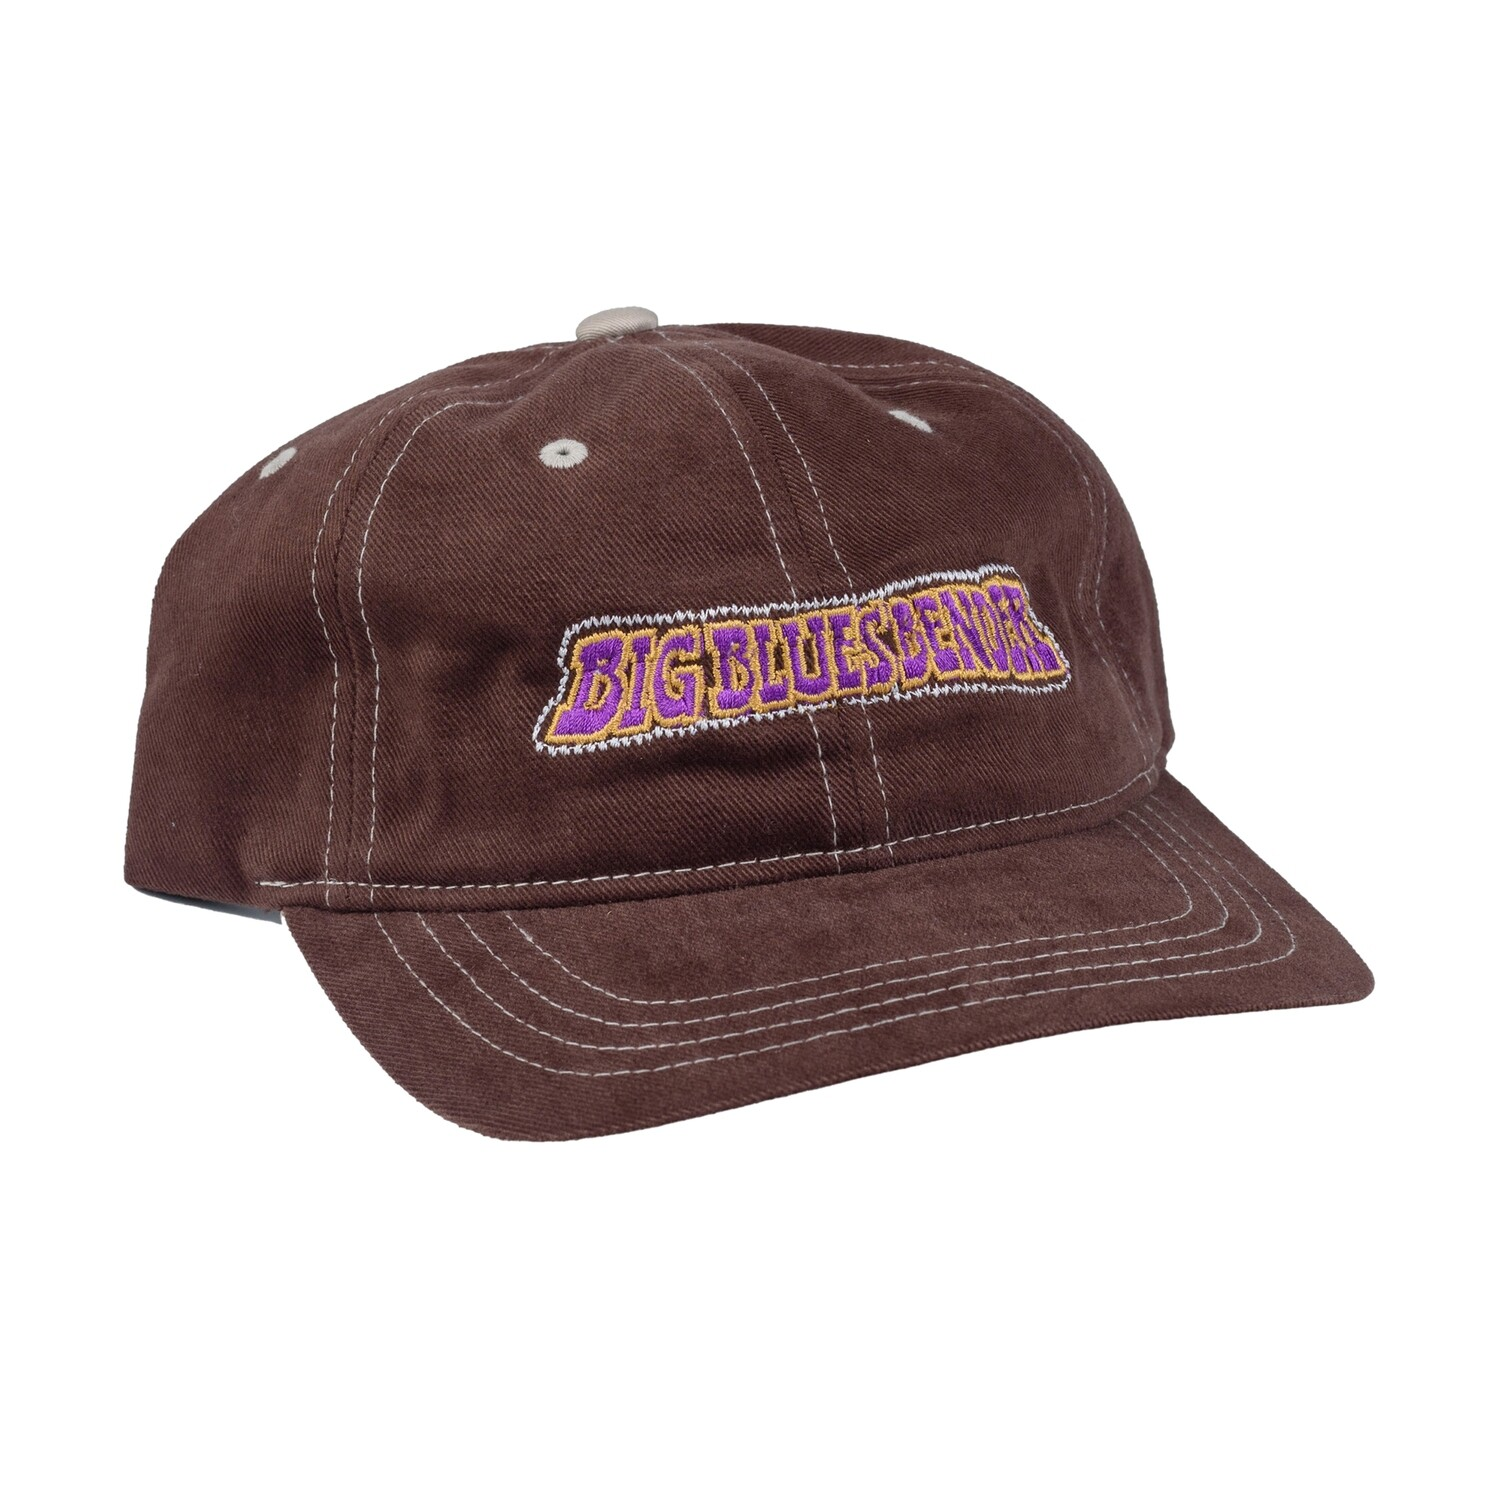 Lizard Letter Cap, Brown w/ White stitching